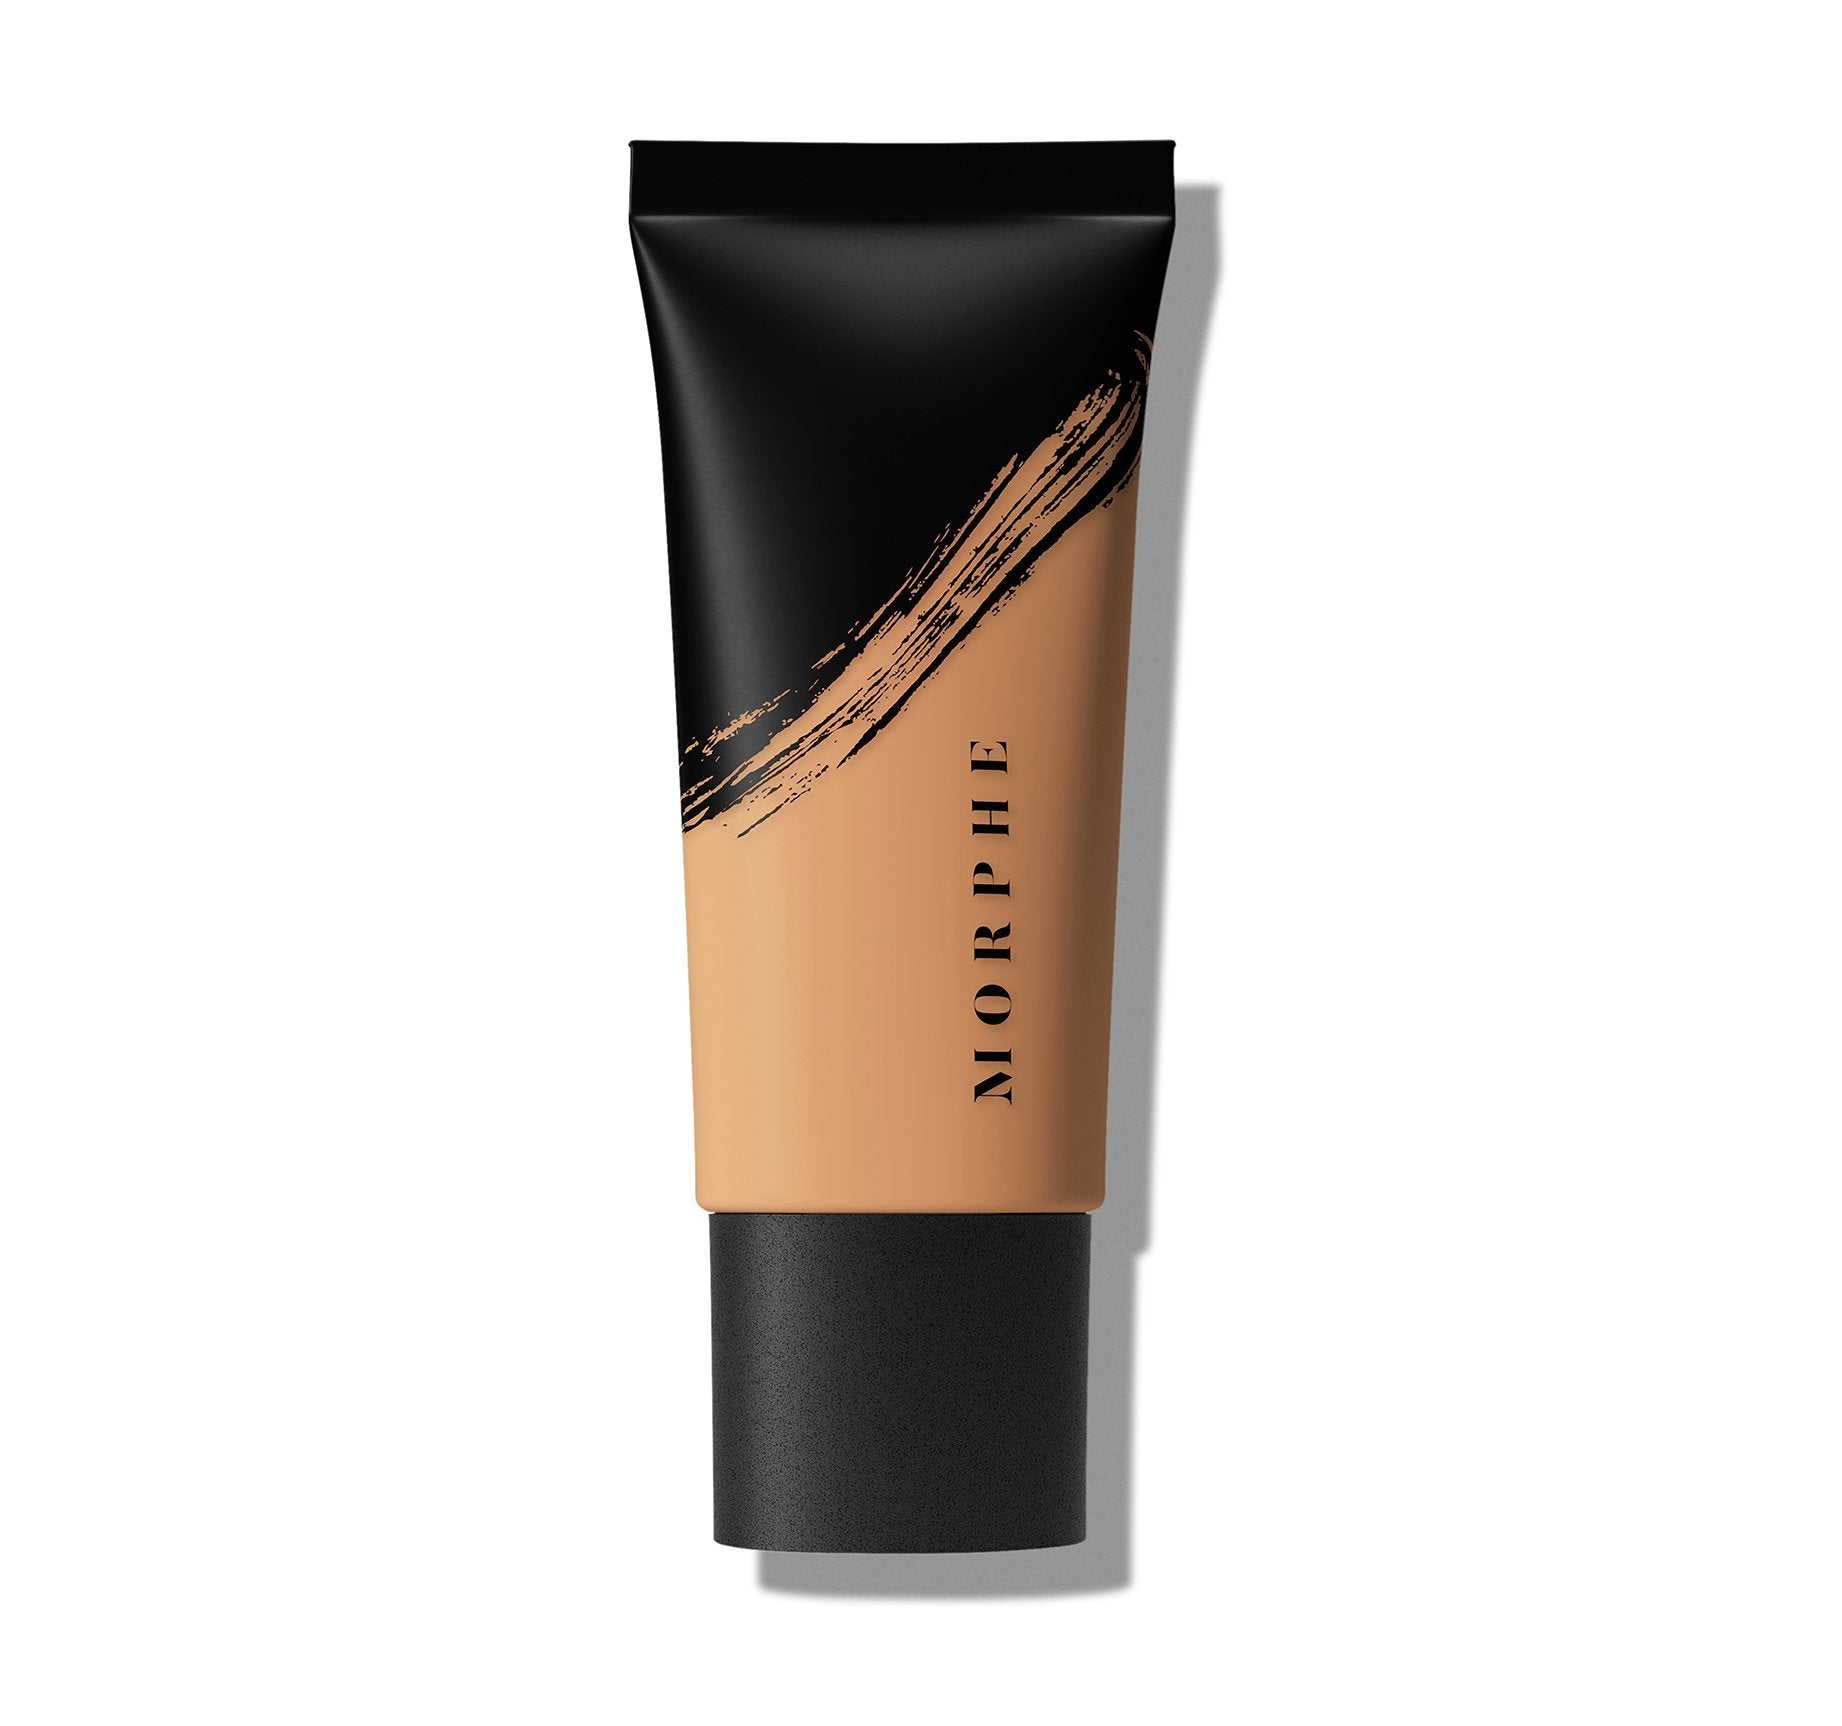 FLUIDITY FULL-COVERAGE FOUNDATION - F2.39, view larger image